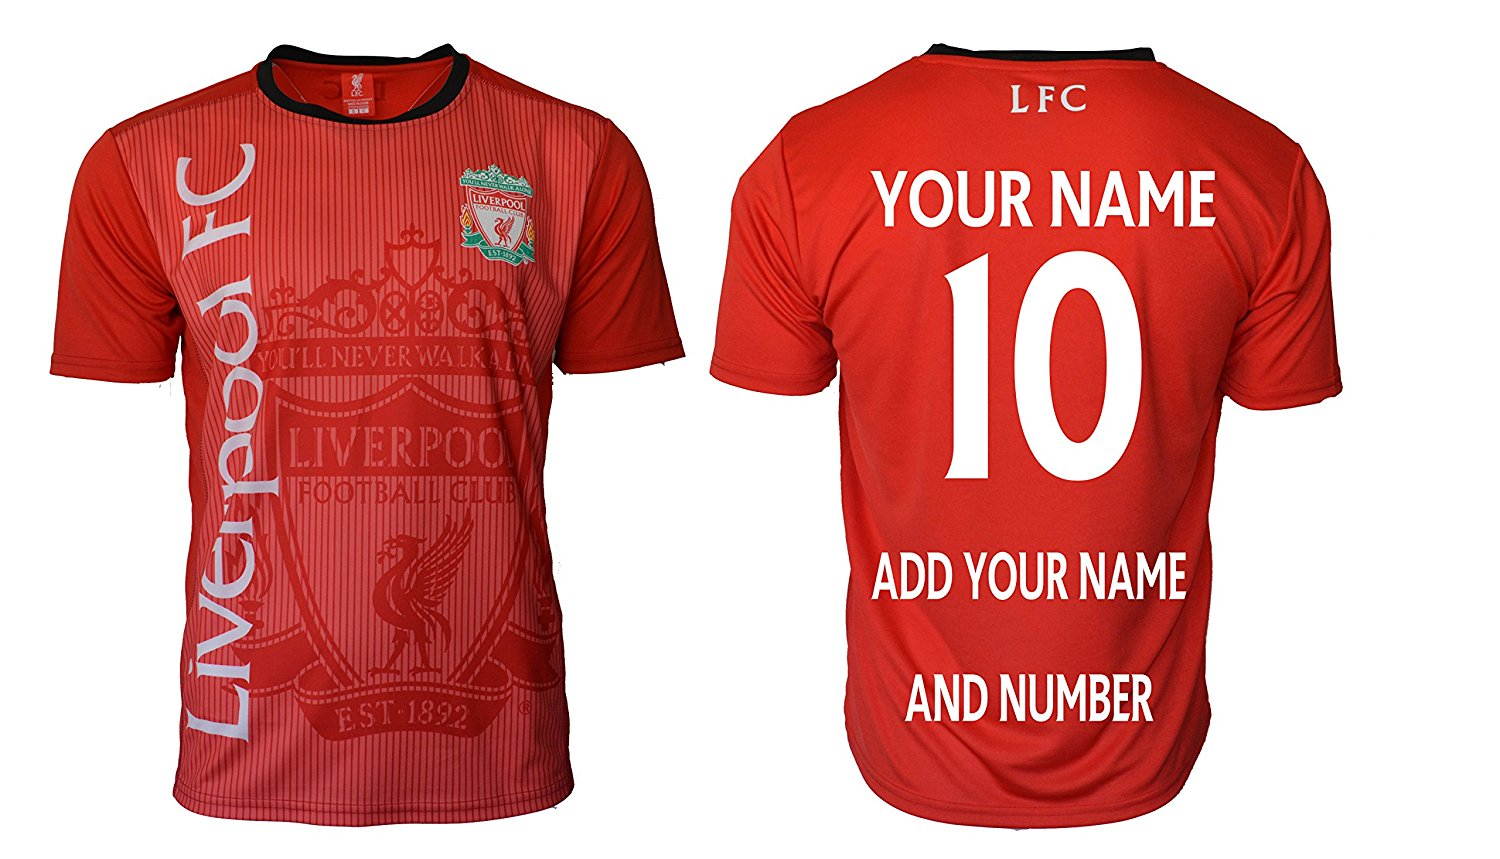 f7fbf42d2 Get Quotations · Liverpool Soccer Jersey Adult Men s Training Custom Name  and Number